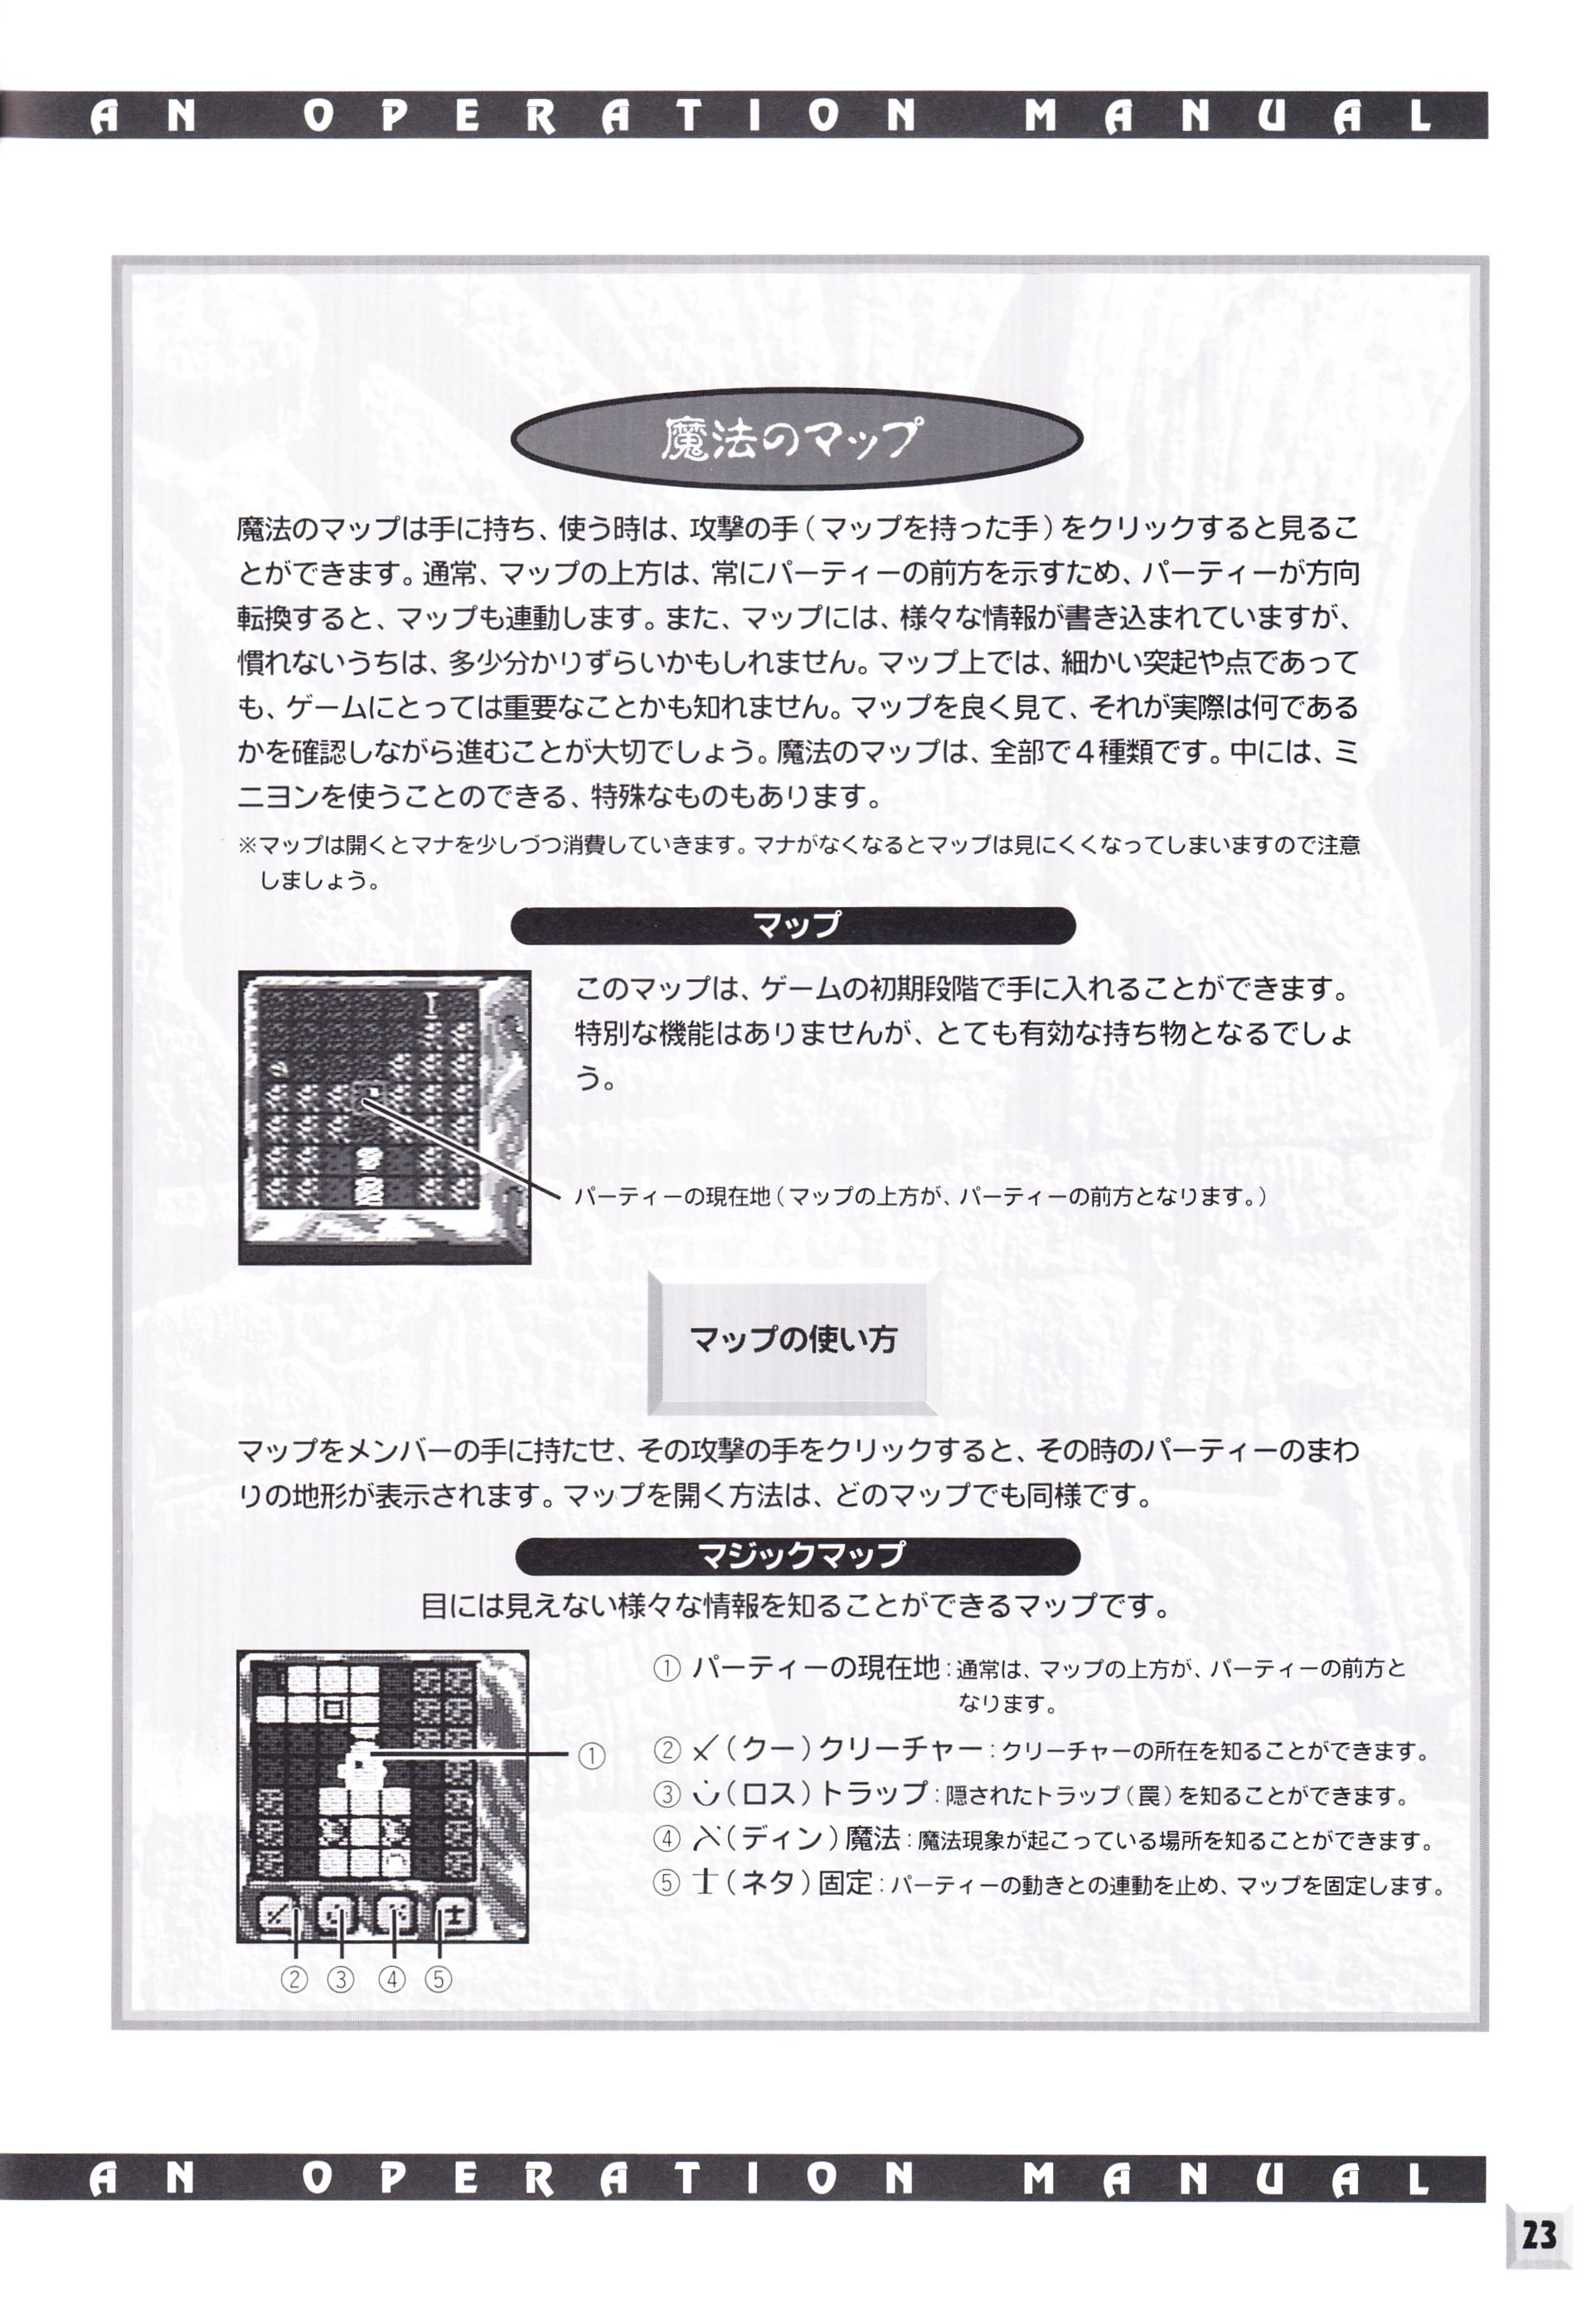 Game - Dungeon Master II - JP - PC-9821 - An Operation Manual - Page 025 - Scan